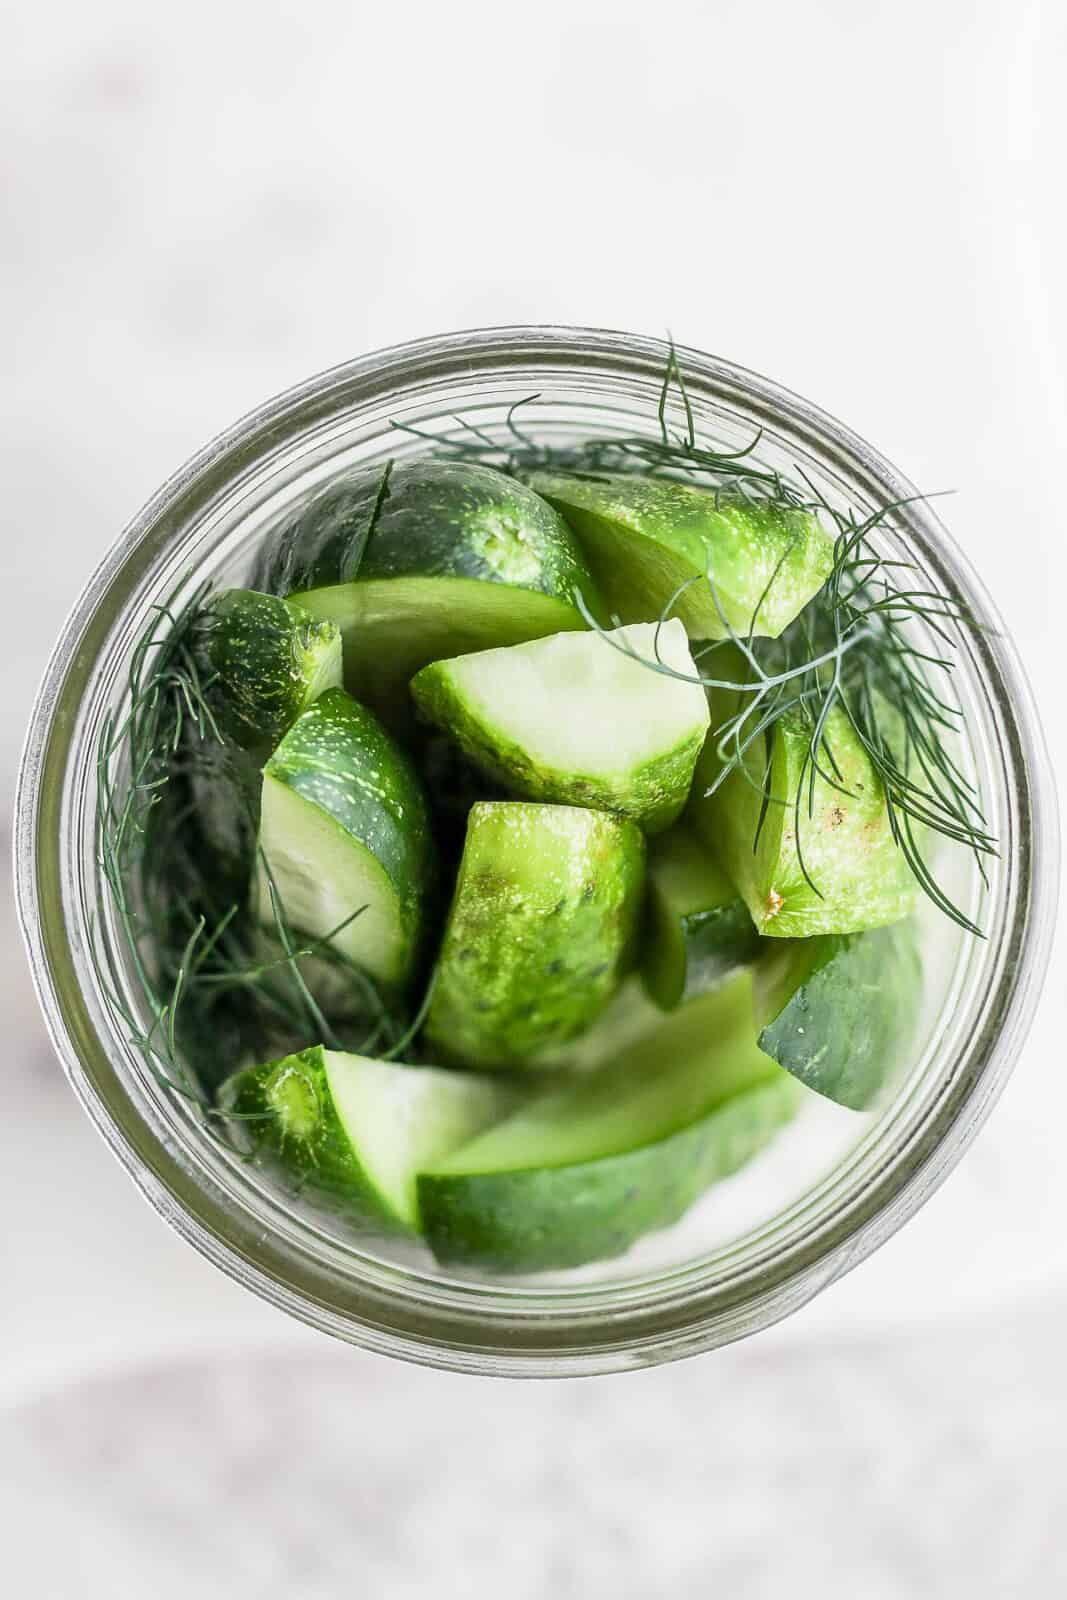 Top view of mason jar with sliced cucumbers and fresh dill inside.